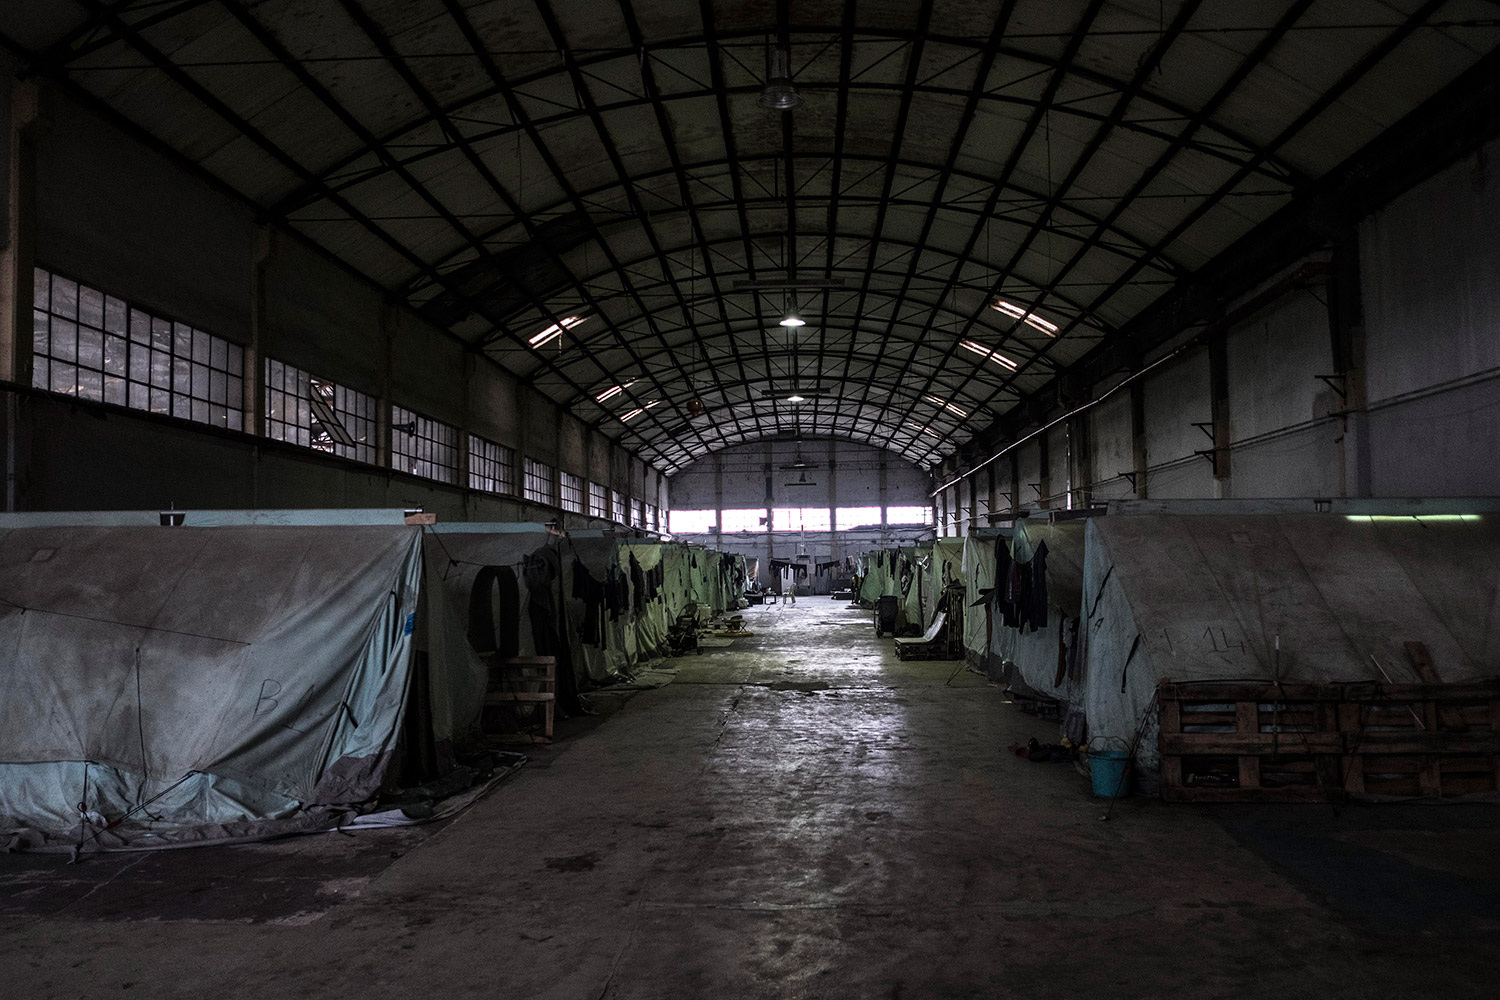 The Karamanlis refugee camp in northern Greece, a few kilometres from Thessaloniki